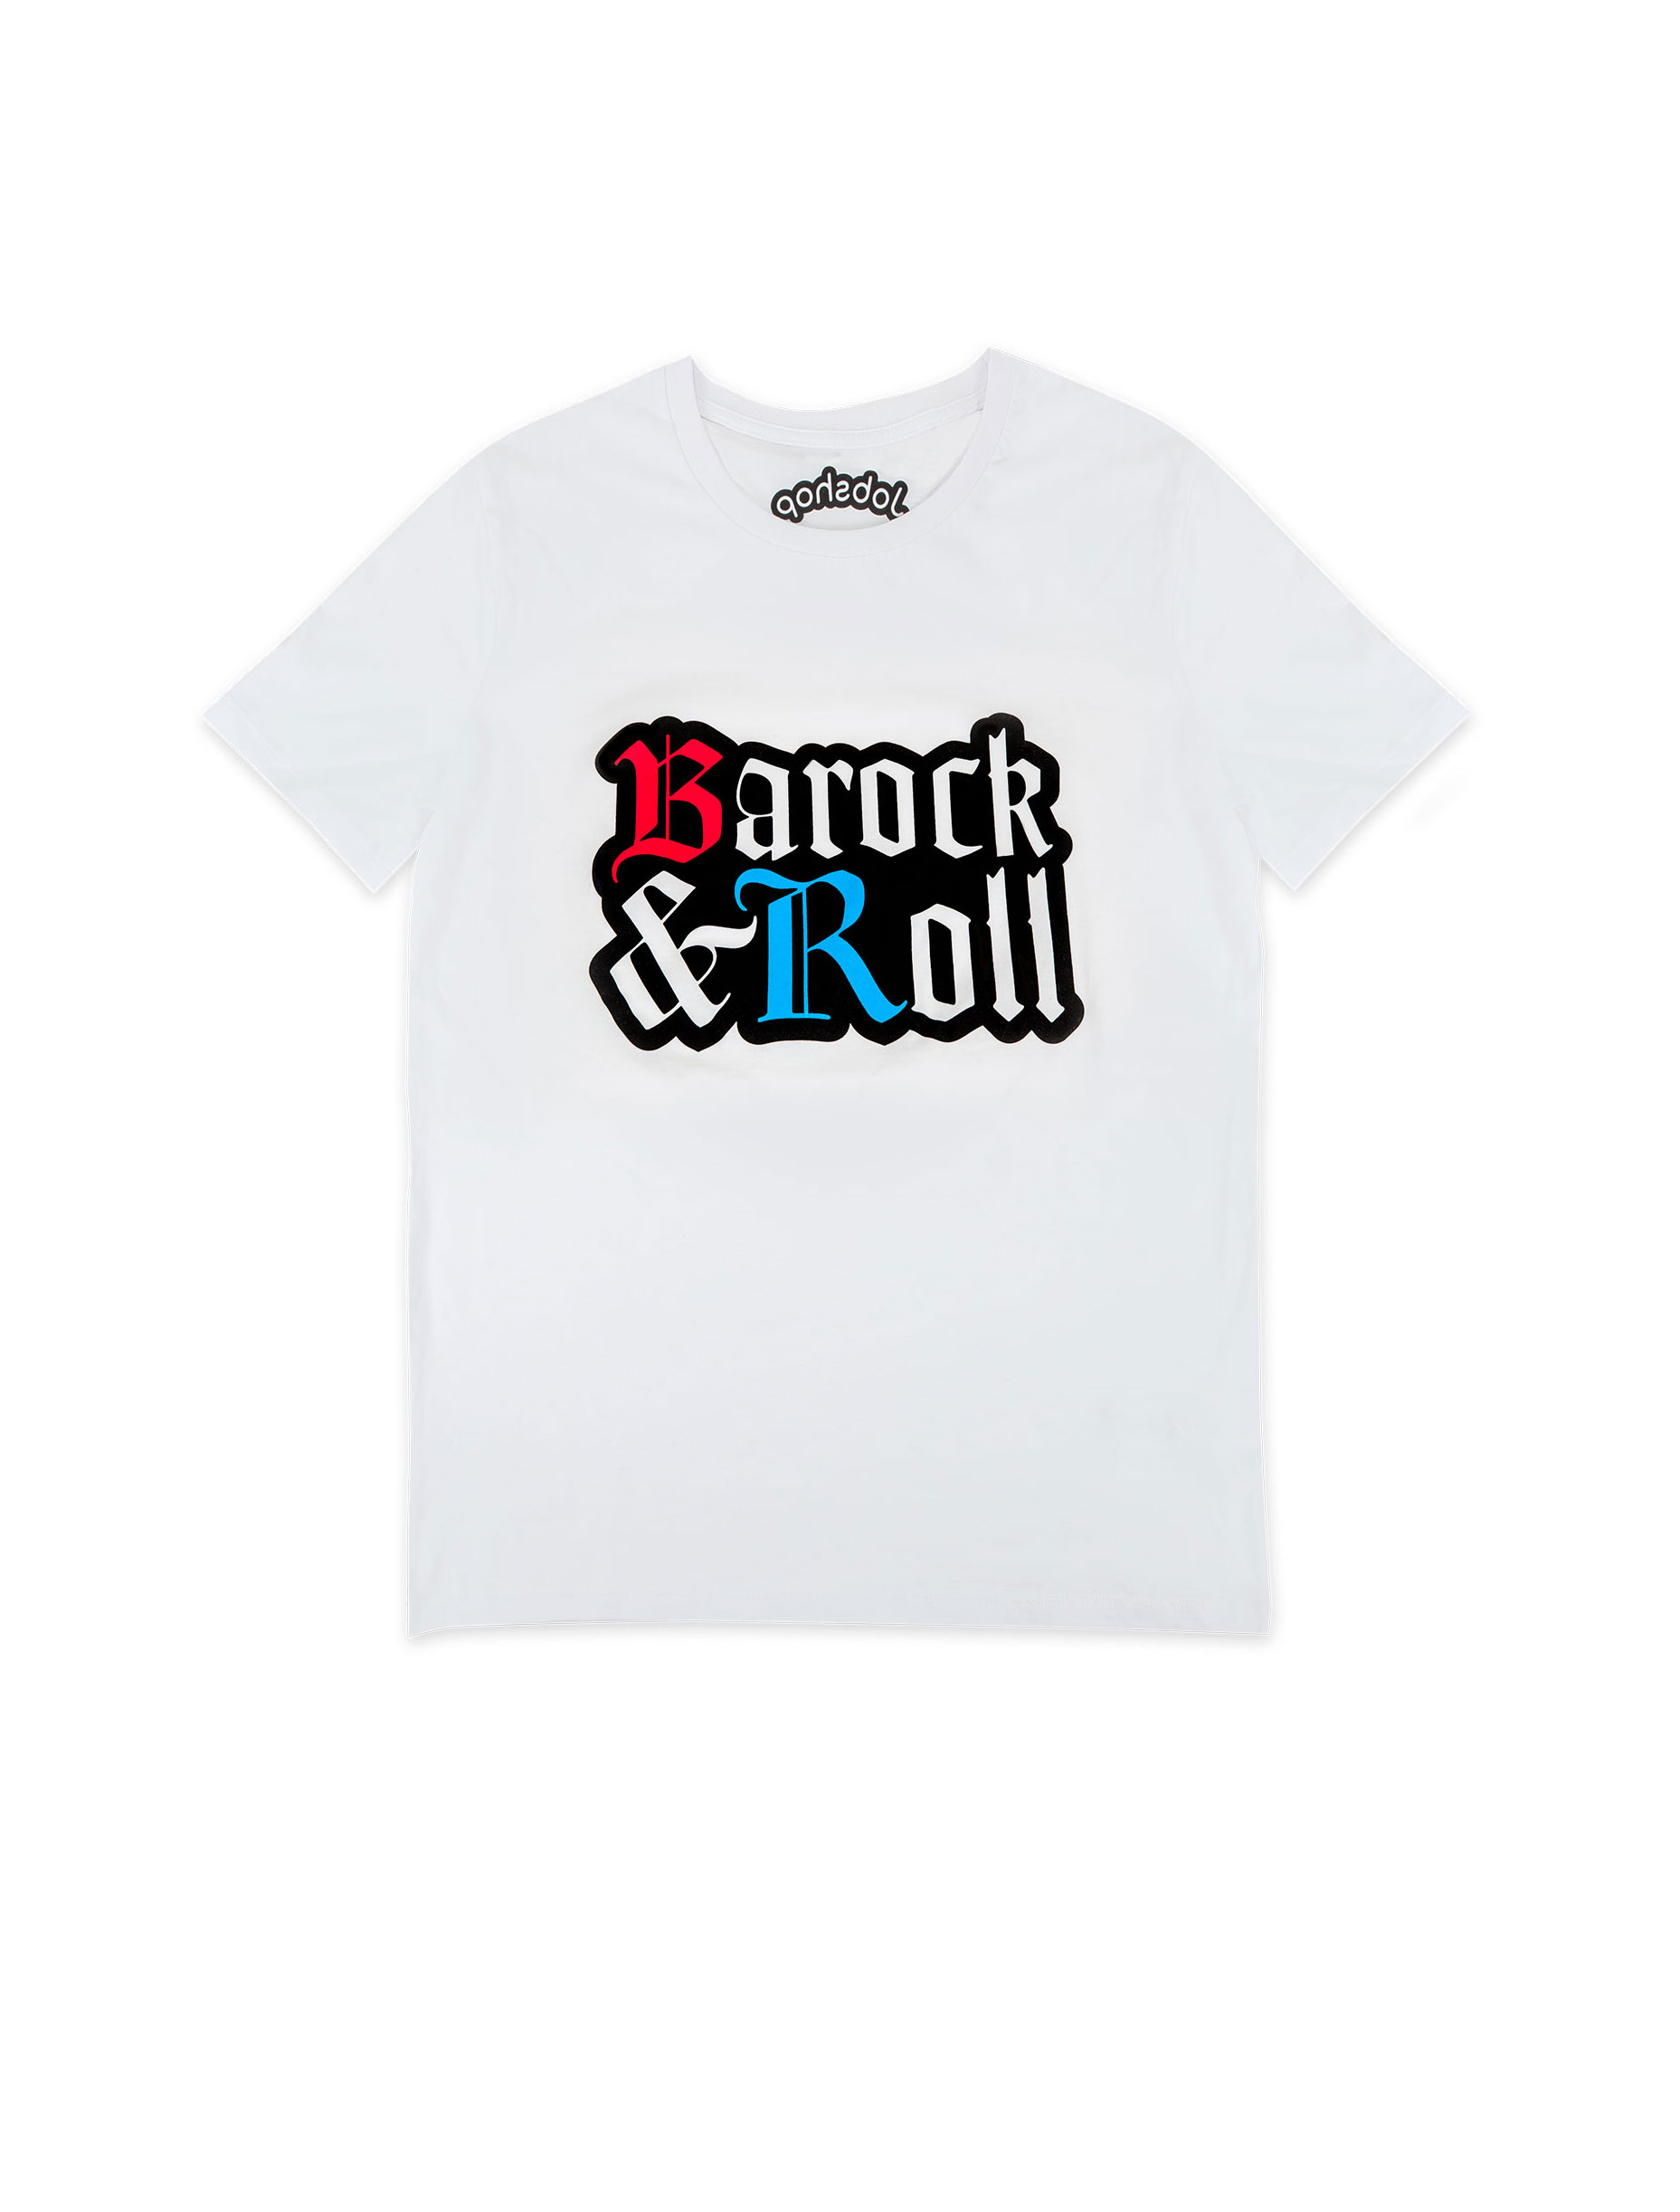 Barock-Roll-Shirt-Studio-Job-3